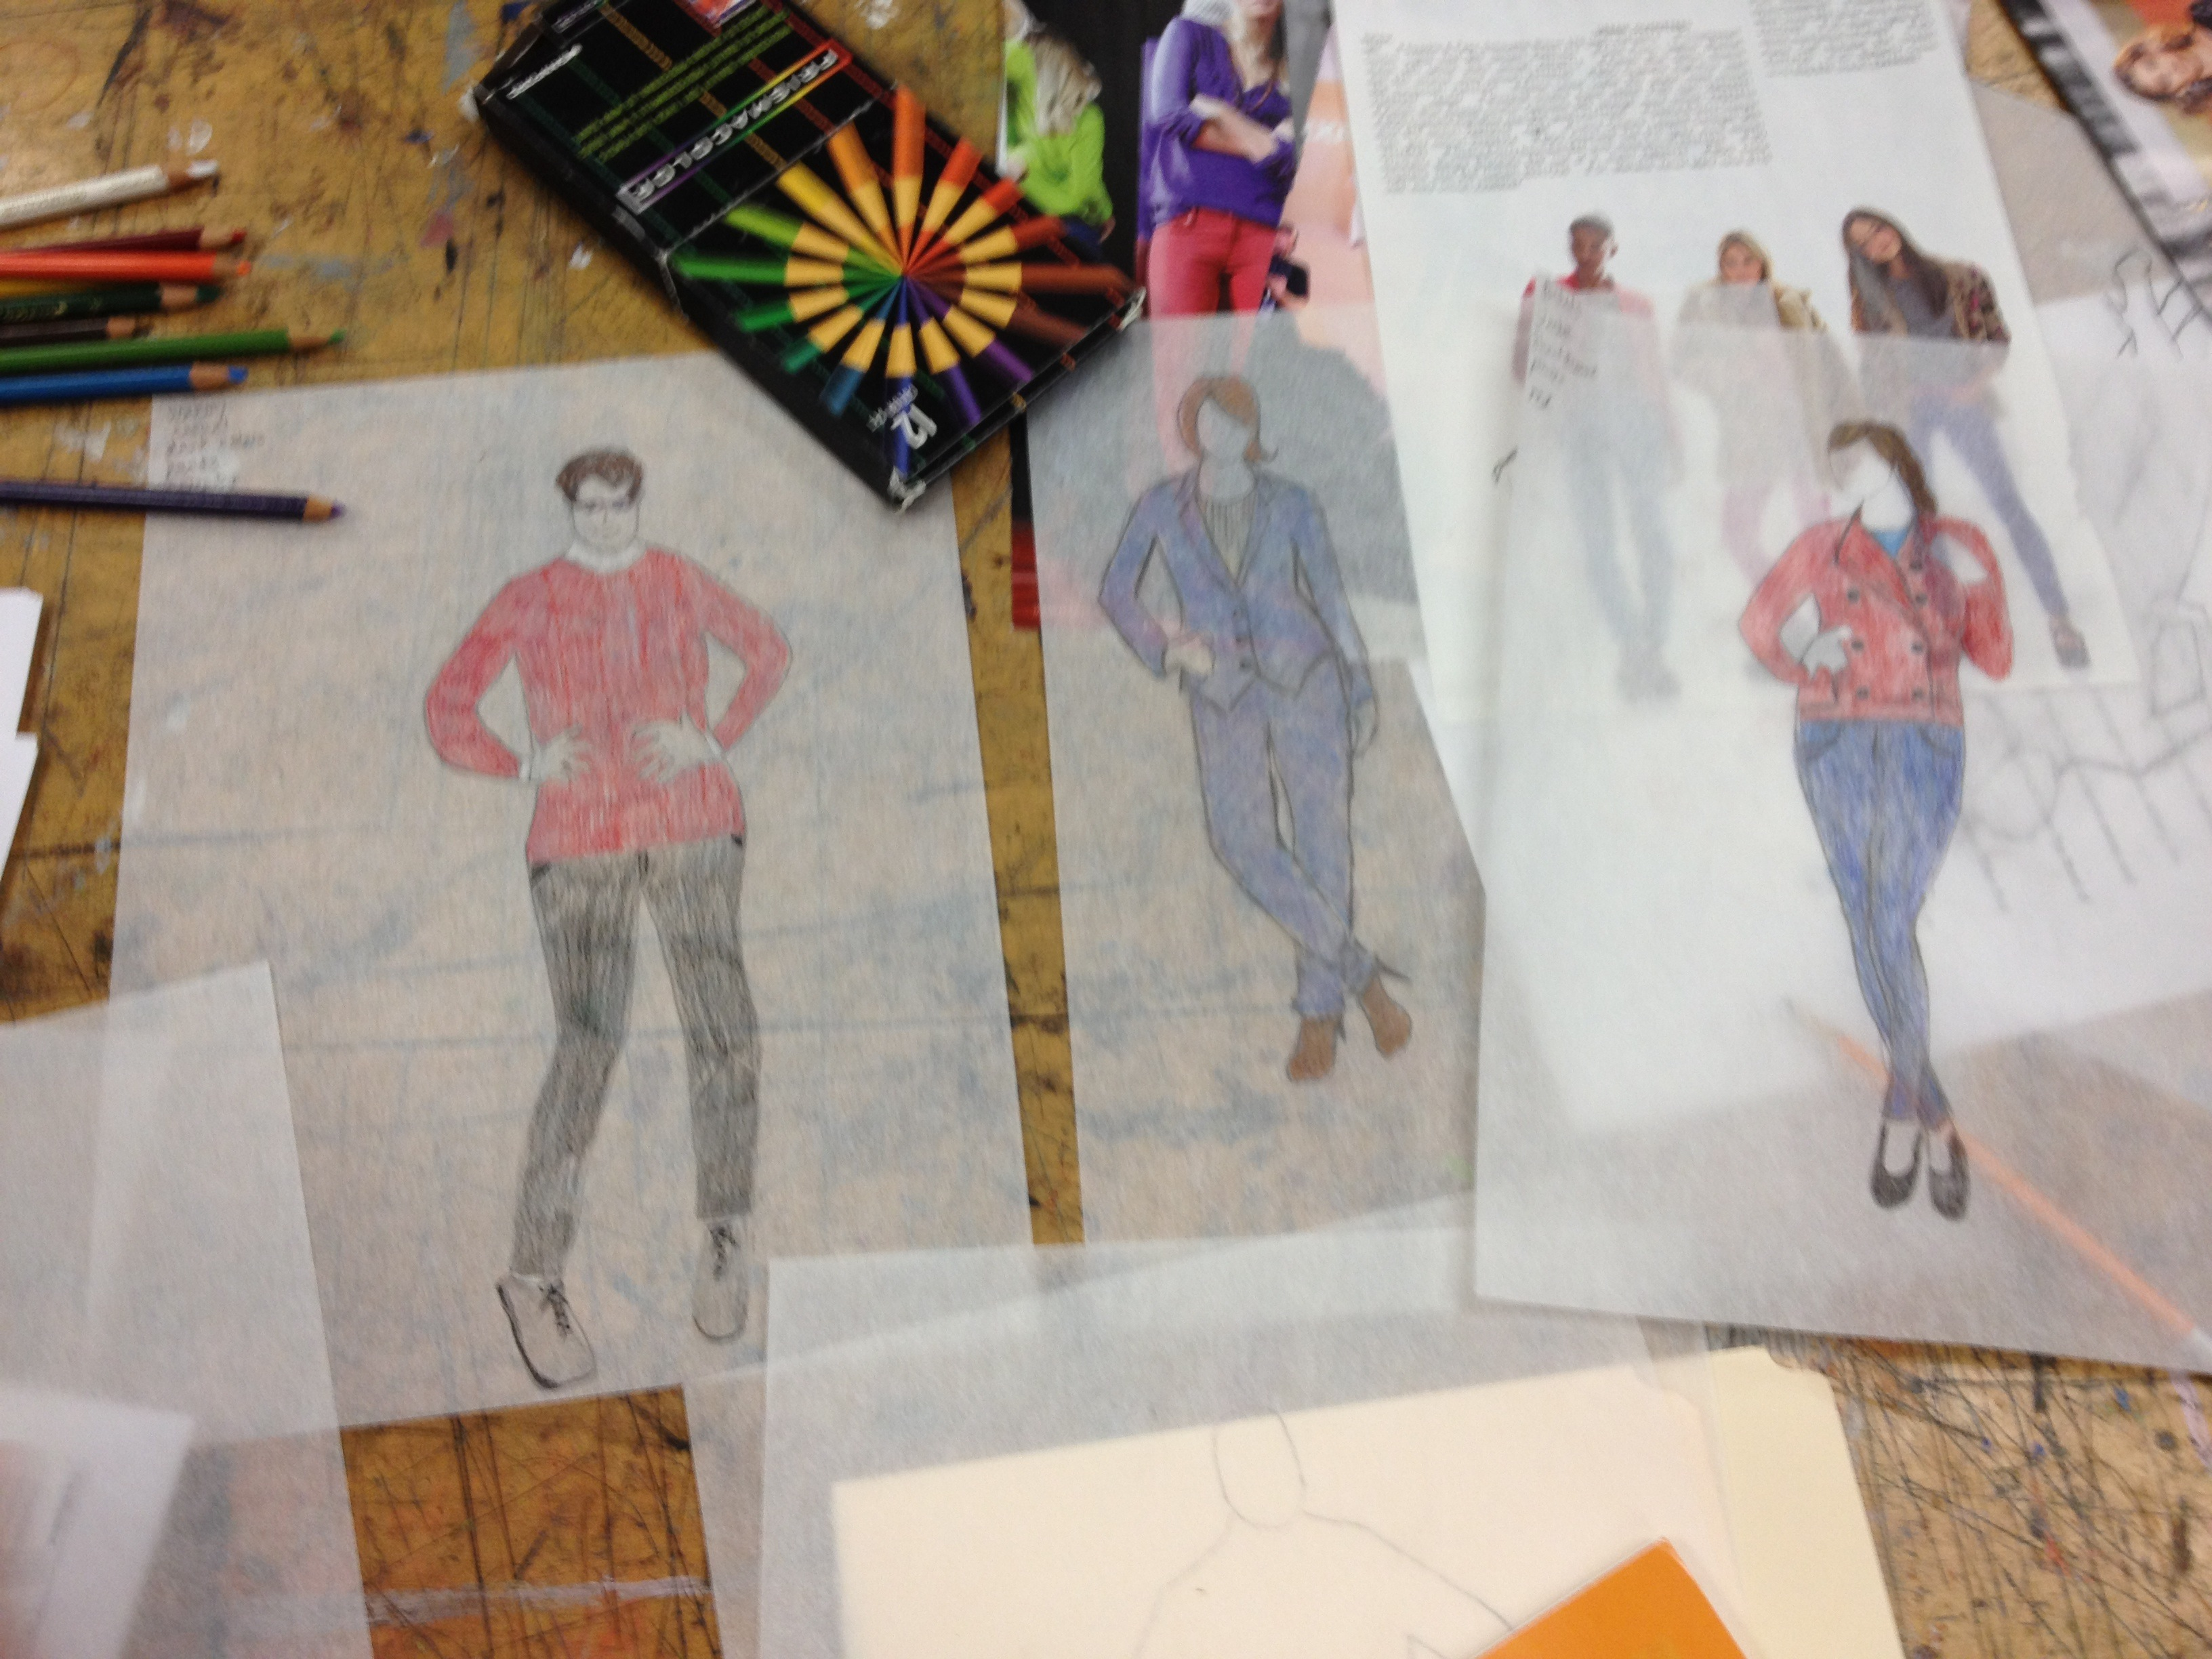 Many sketching of fashion templates